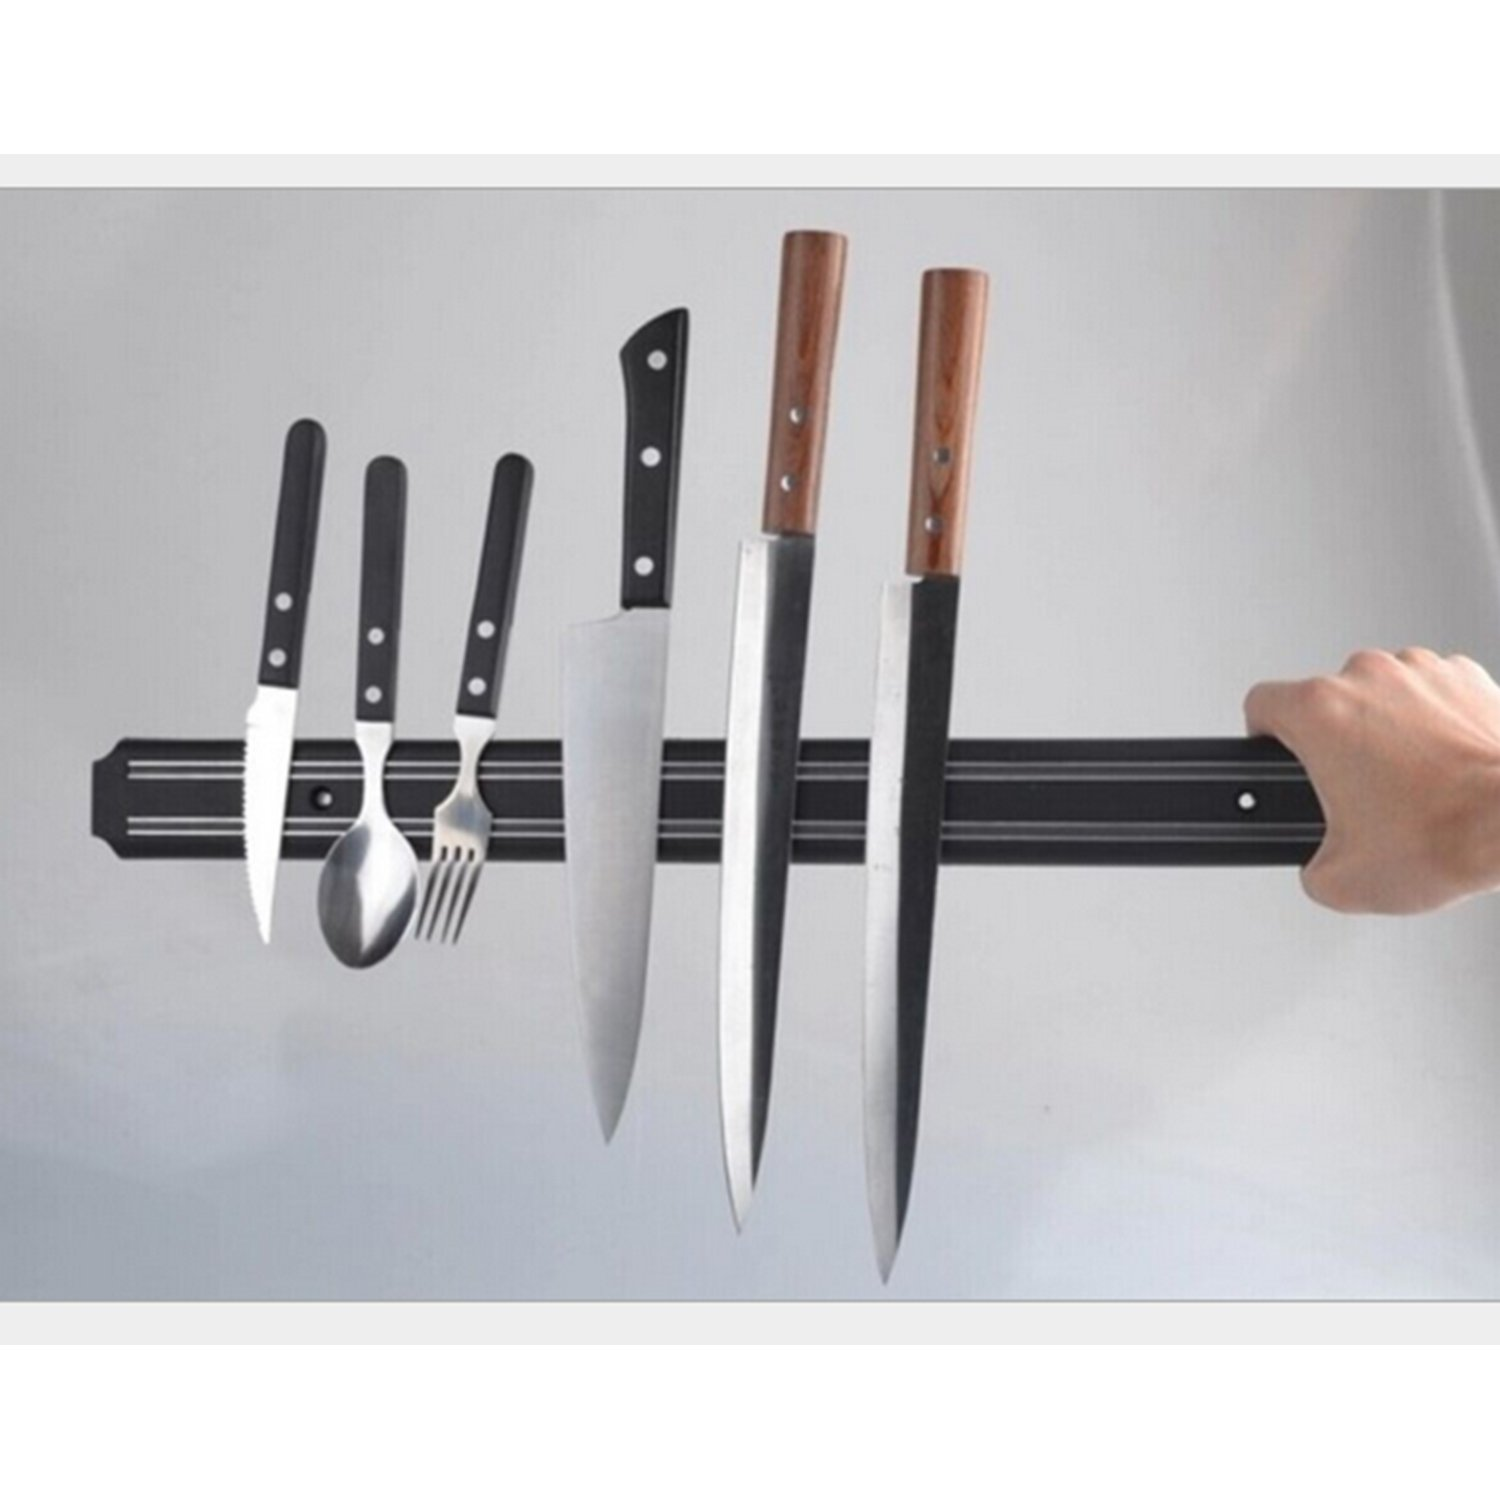 Kangkang@ Wall-mounted Magnetic Self-adhesive 21 inches Length Knifes Holder Stainless Steel Block Magnet Knife Holder Rack Stand For Knifes